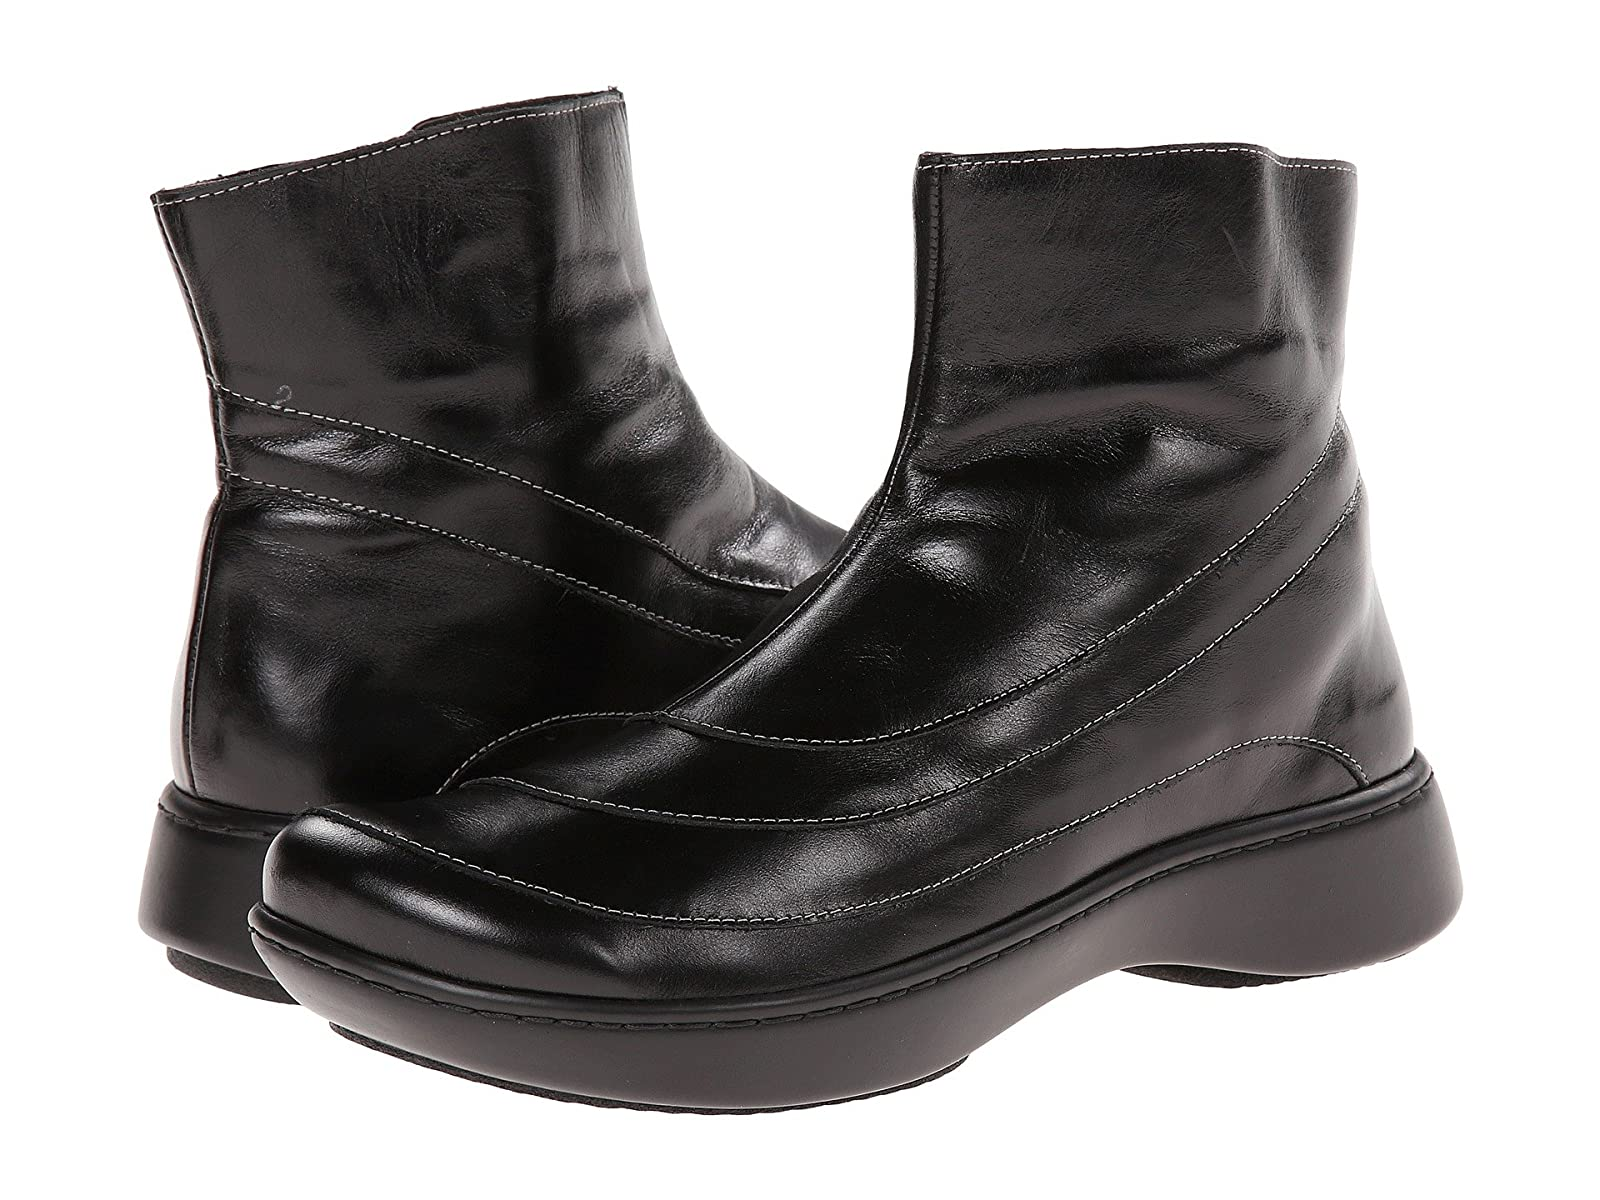 Naot TellinEconomical and quality shoes